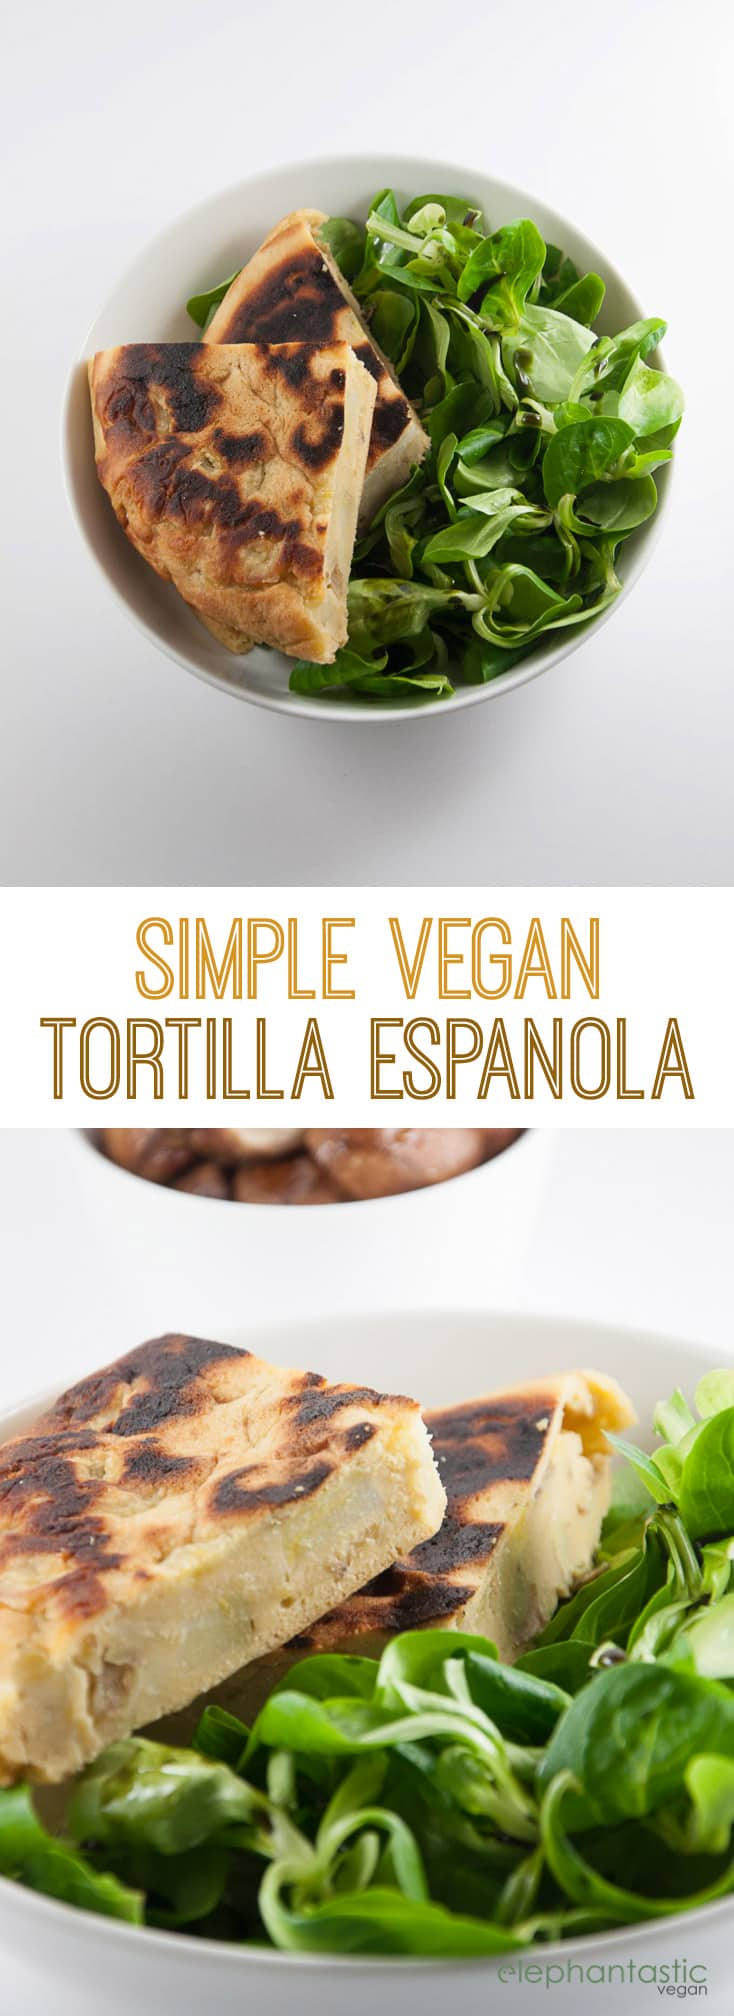 Simple Vegan Tortilla Espanola | ElephantasticVegan.com